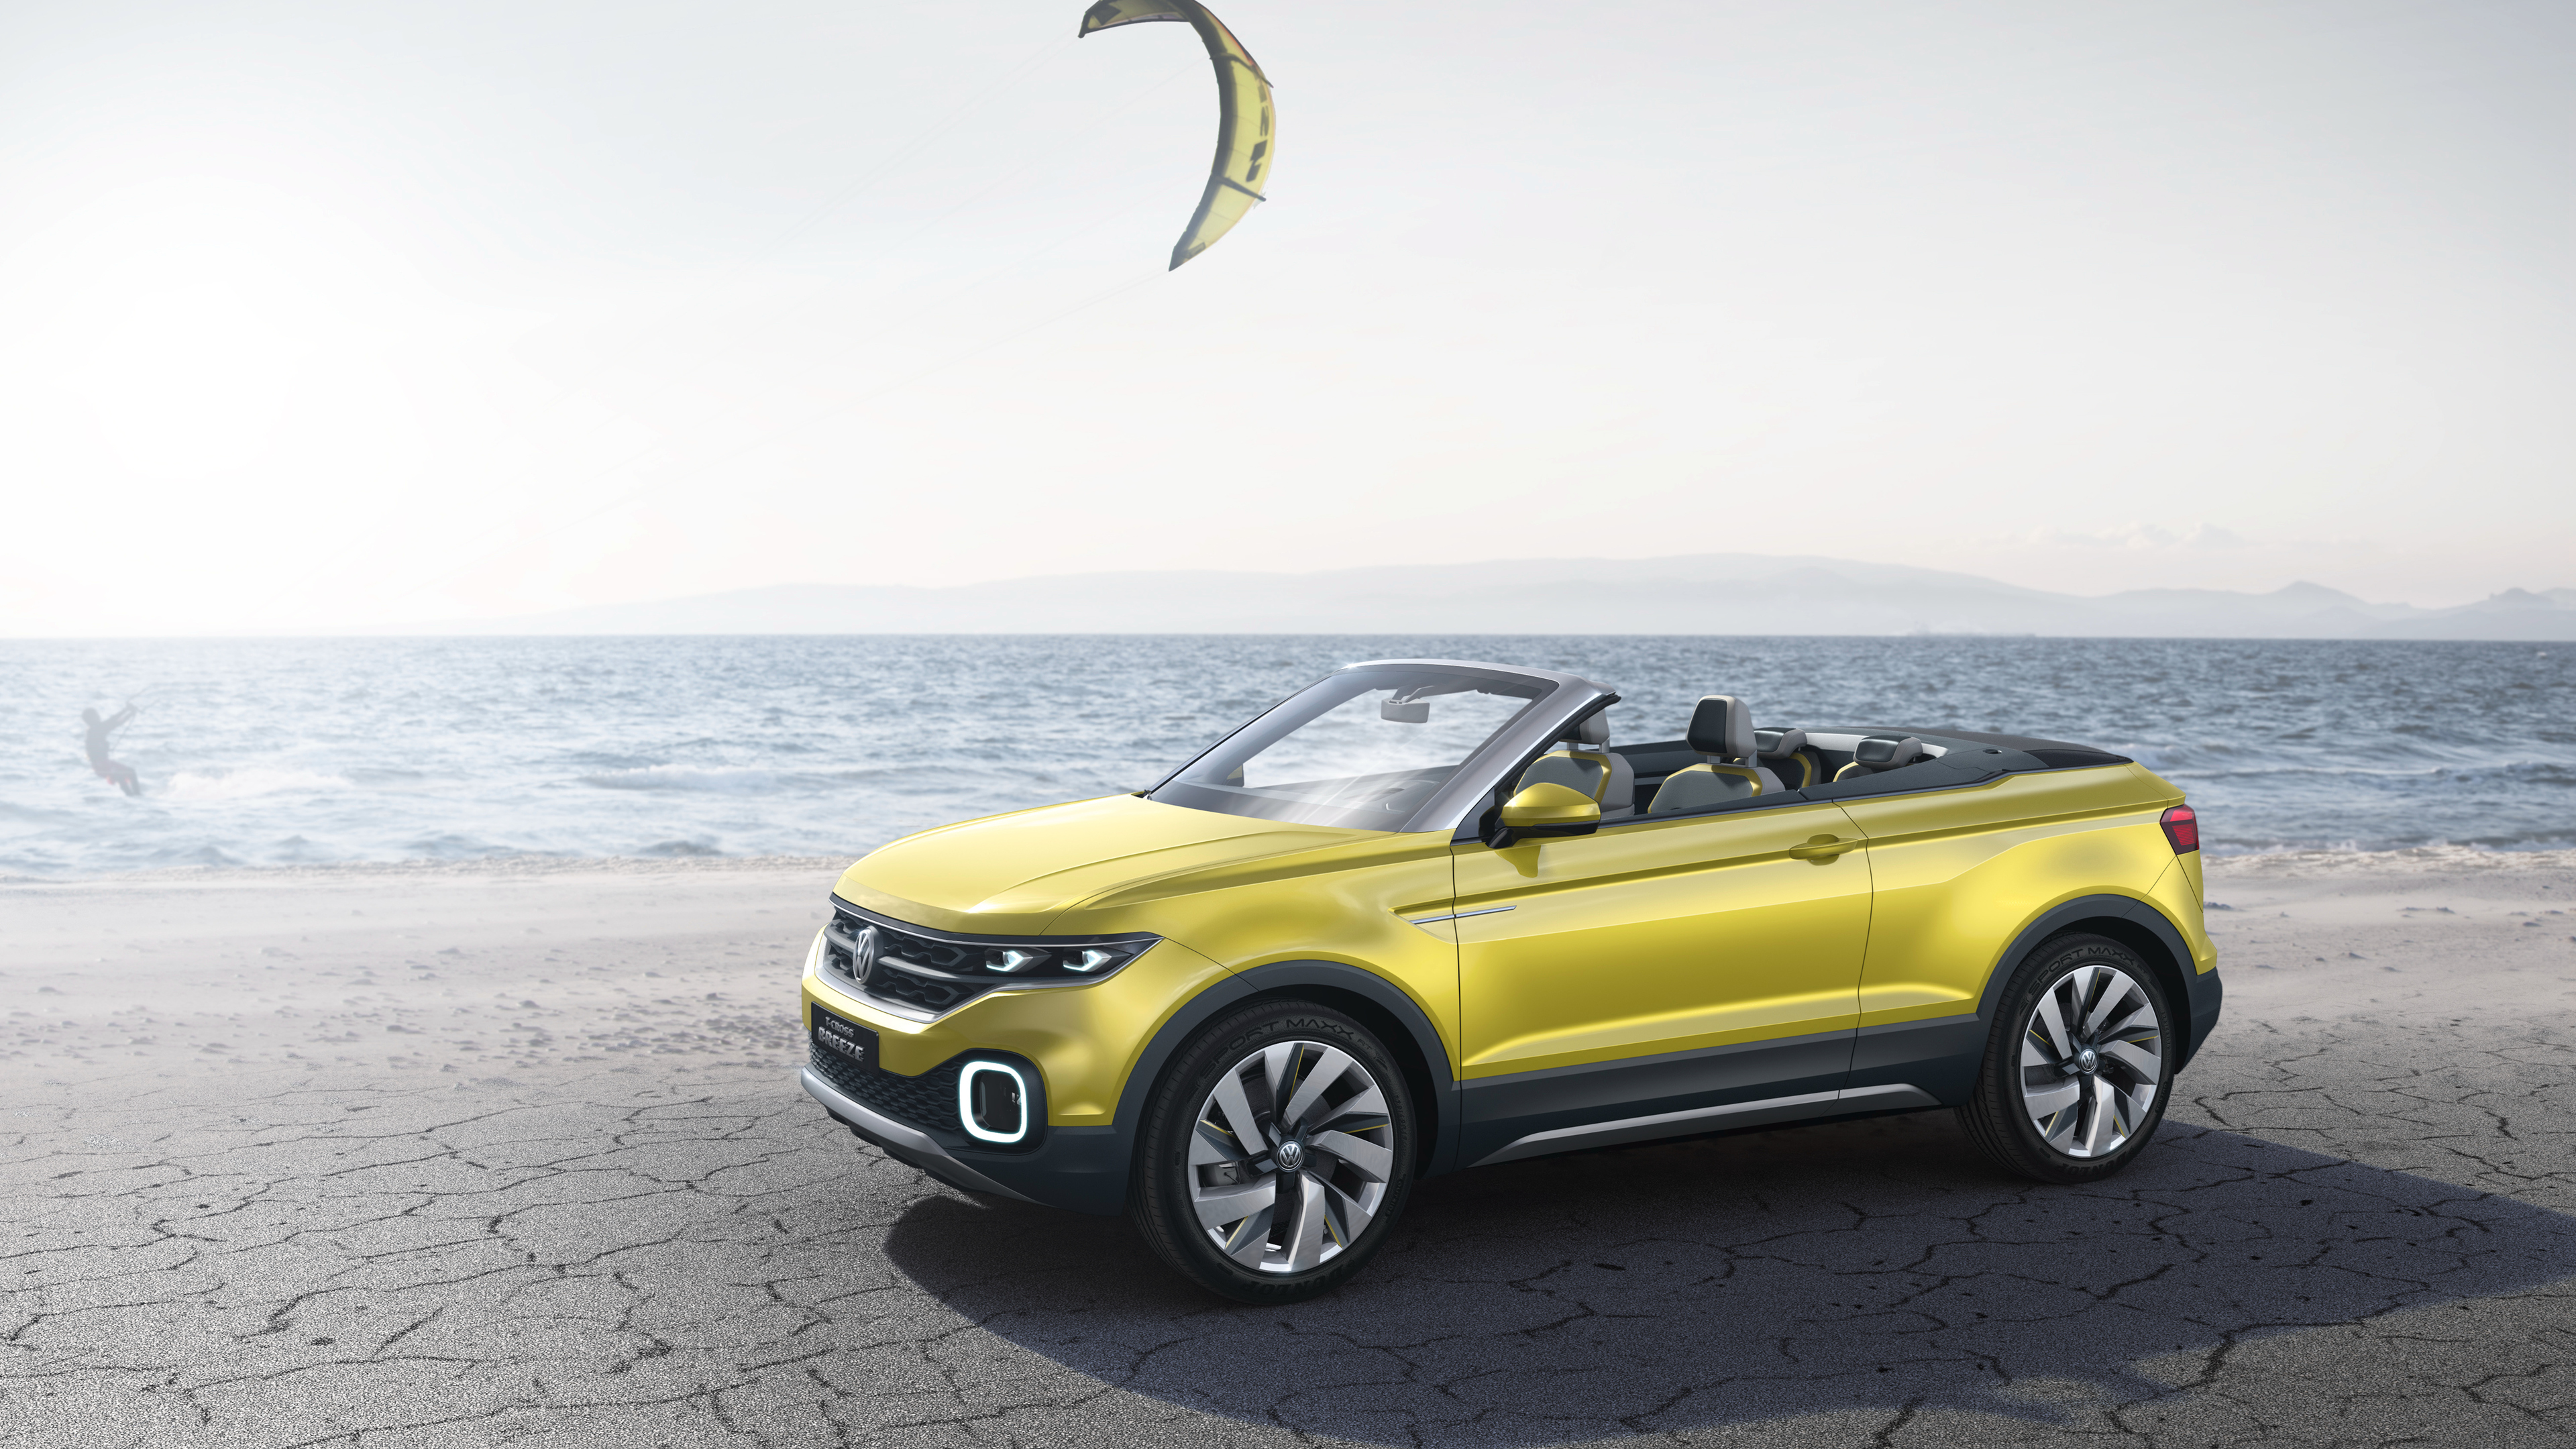 volkswagen t cross breeze concept 1560534234 - Volkswagen T Cross Breeze Concept - volkswagen wallpapers, hd-wallpapers, cars wallpapers, 4k-wallpapers